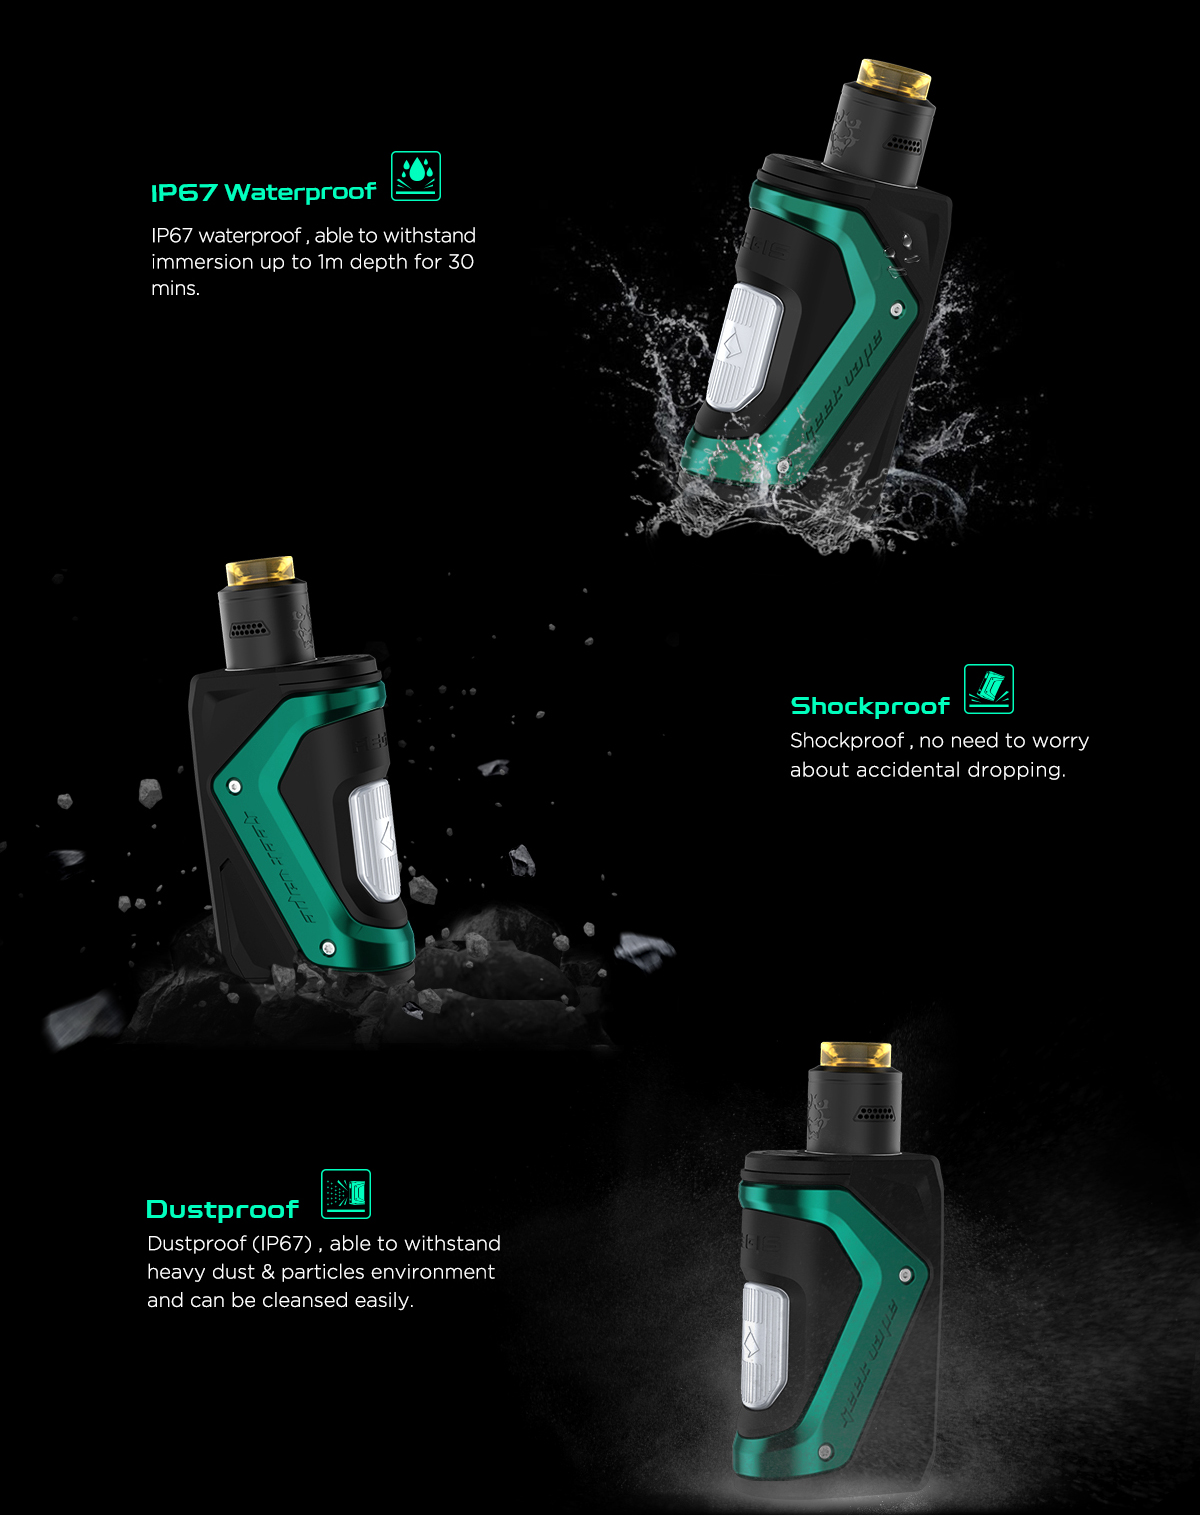 E Cig Brands :: Geekvape :: Original 100W GeekVape Aegis Squonker Kits with Tengu  RDA free shipping - Buy your electronic cigarette kits and accessories at  Buyecigkits.com